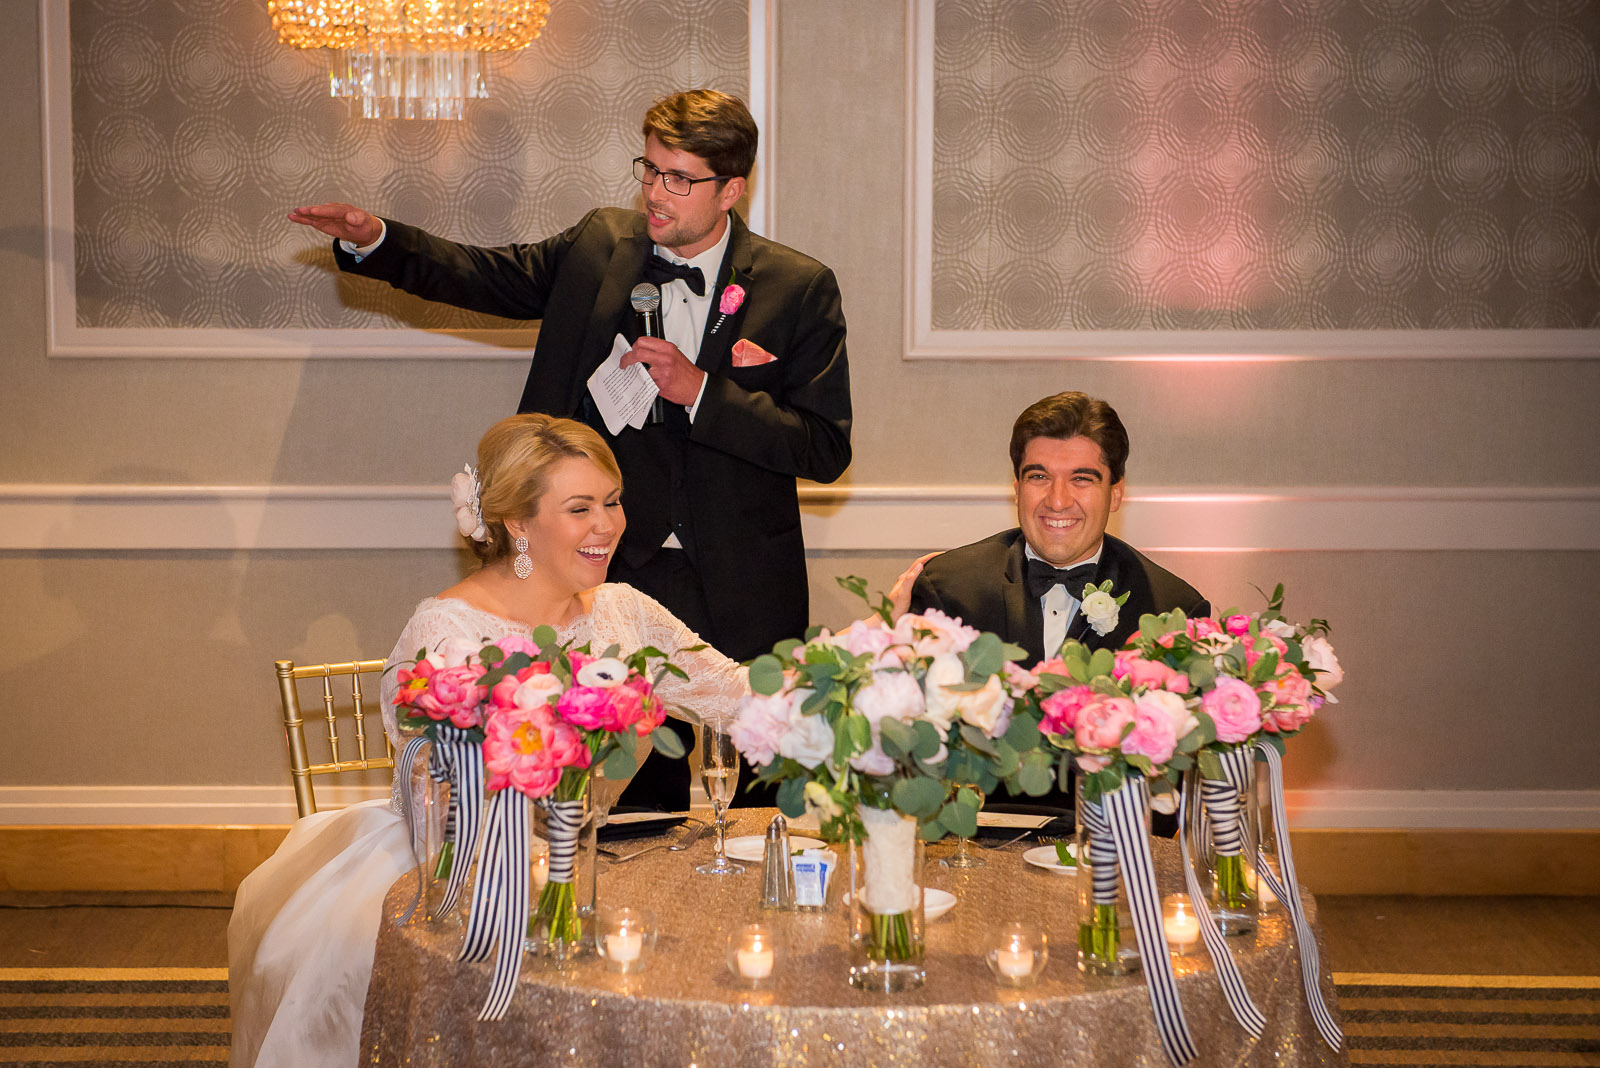 eric_and_christy_photographers_blog_wedding_emilypeter-42